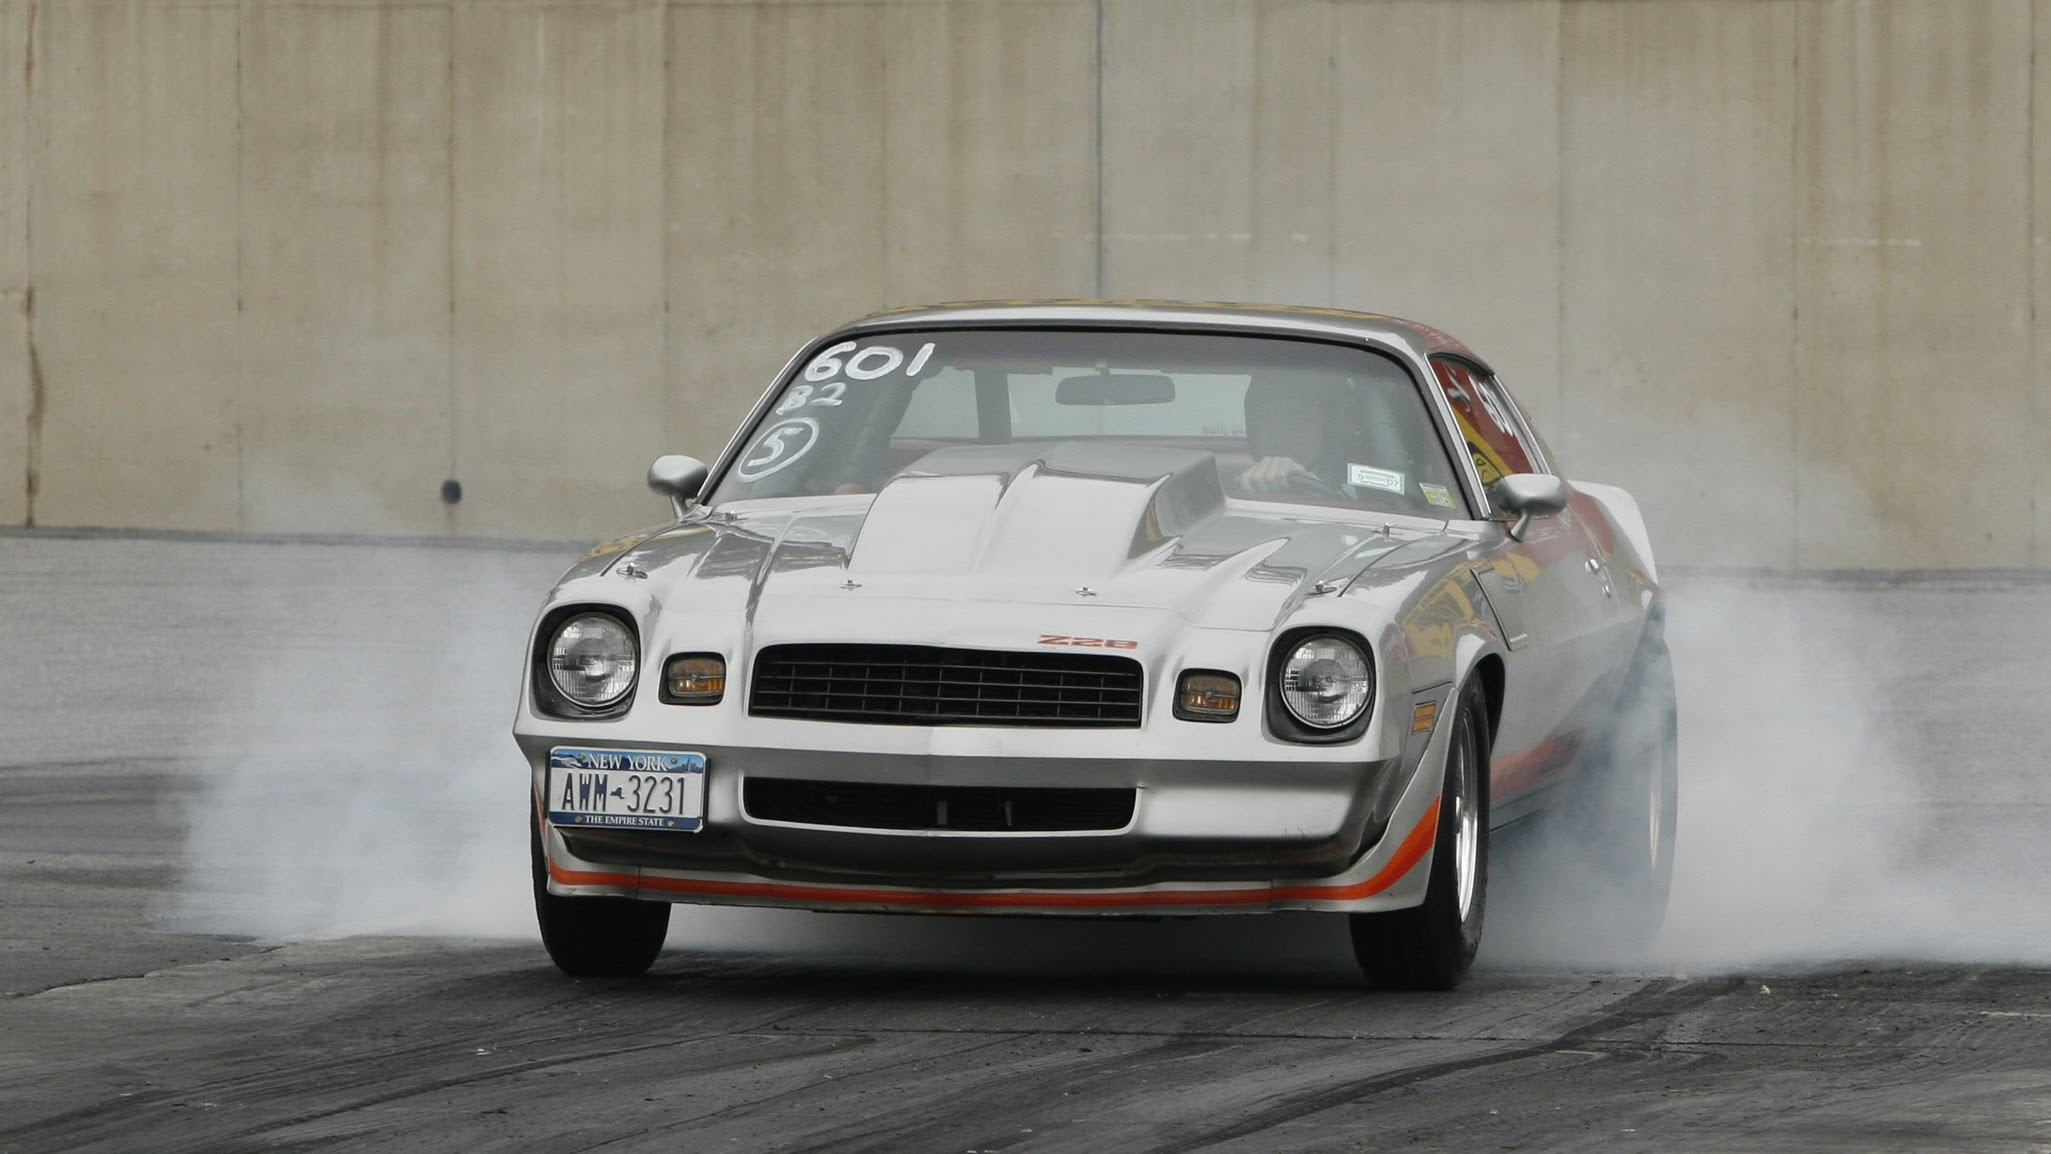 Andy79Z28 4